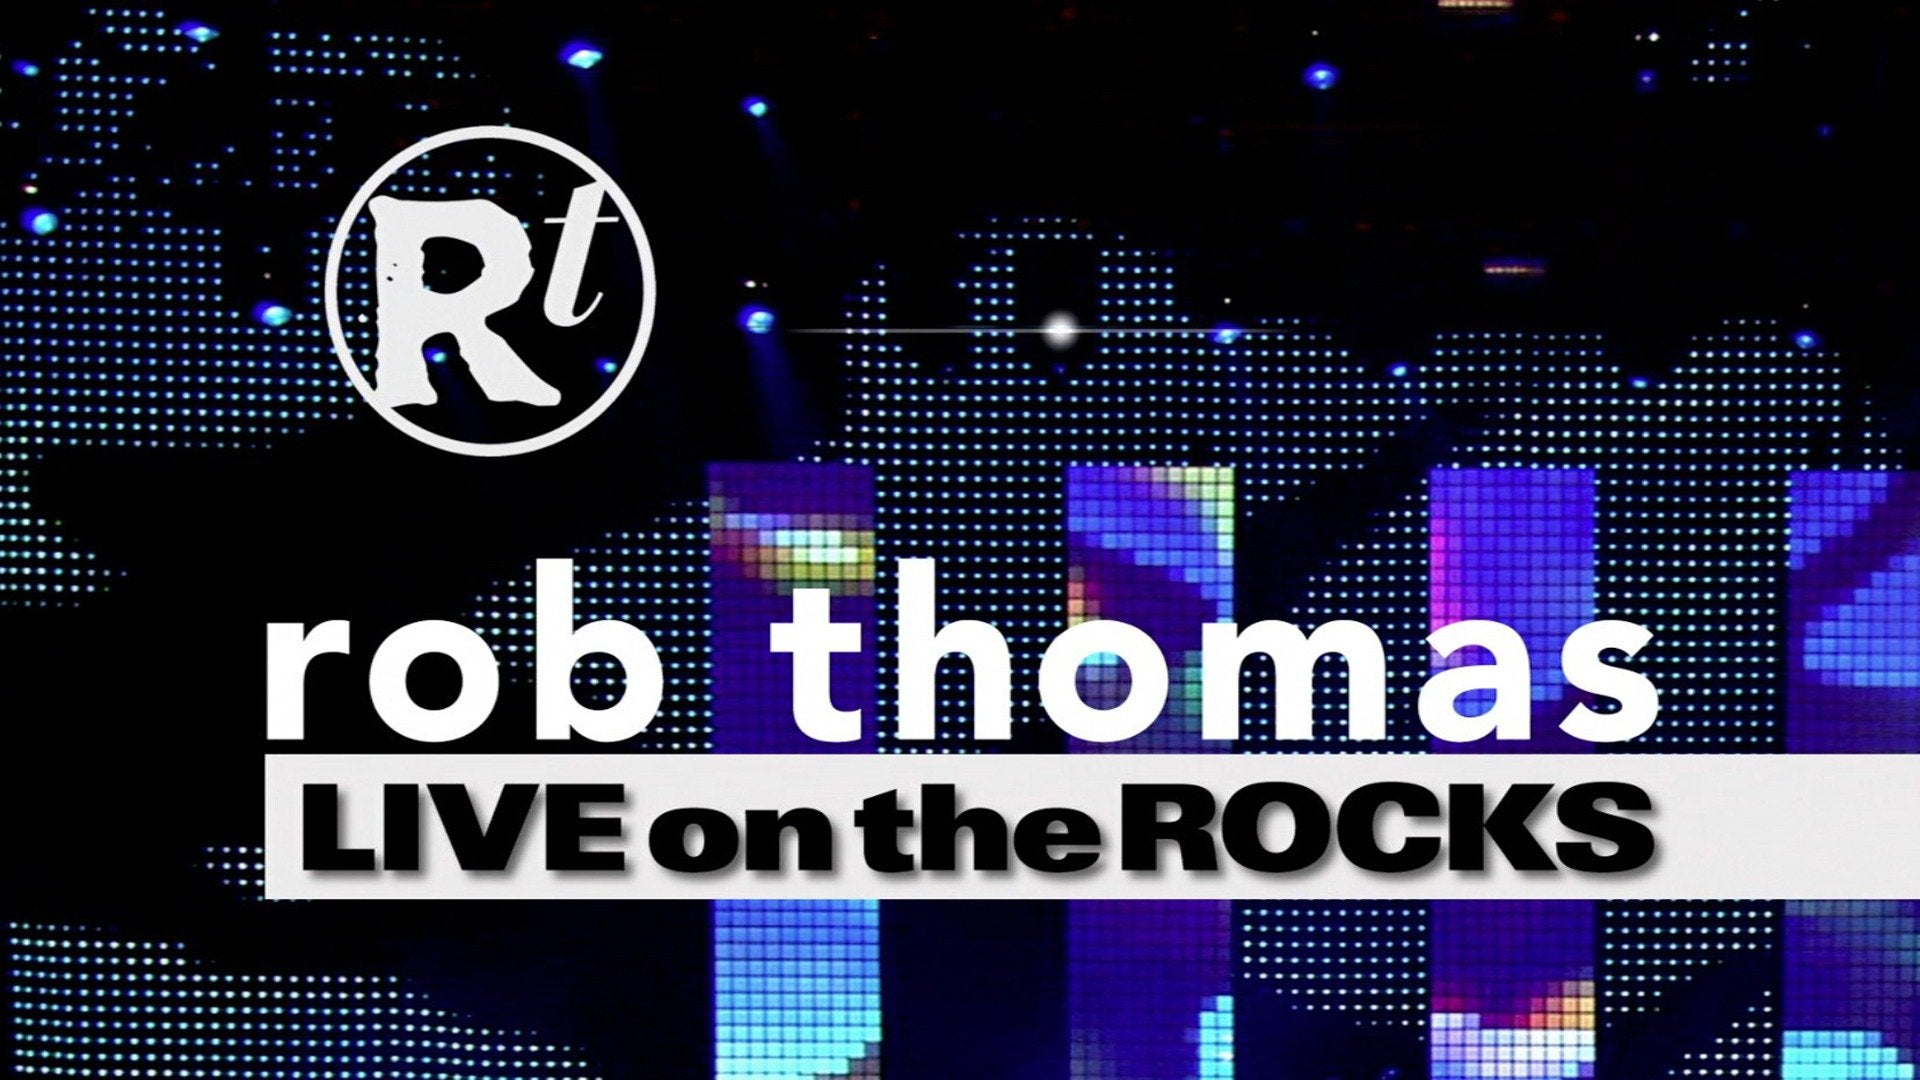 Rob Thomas: Live on the Rocks